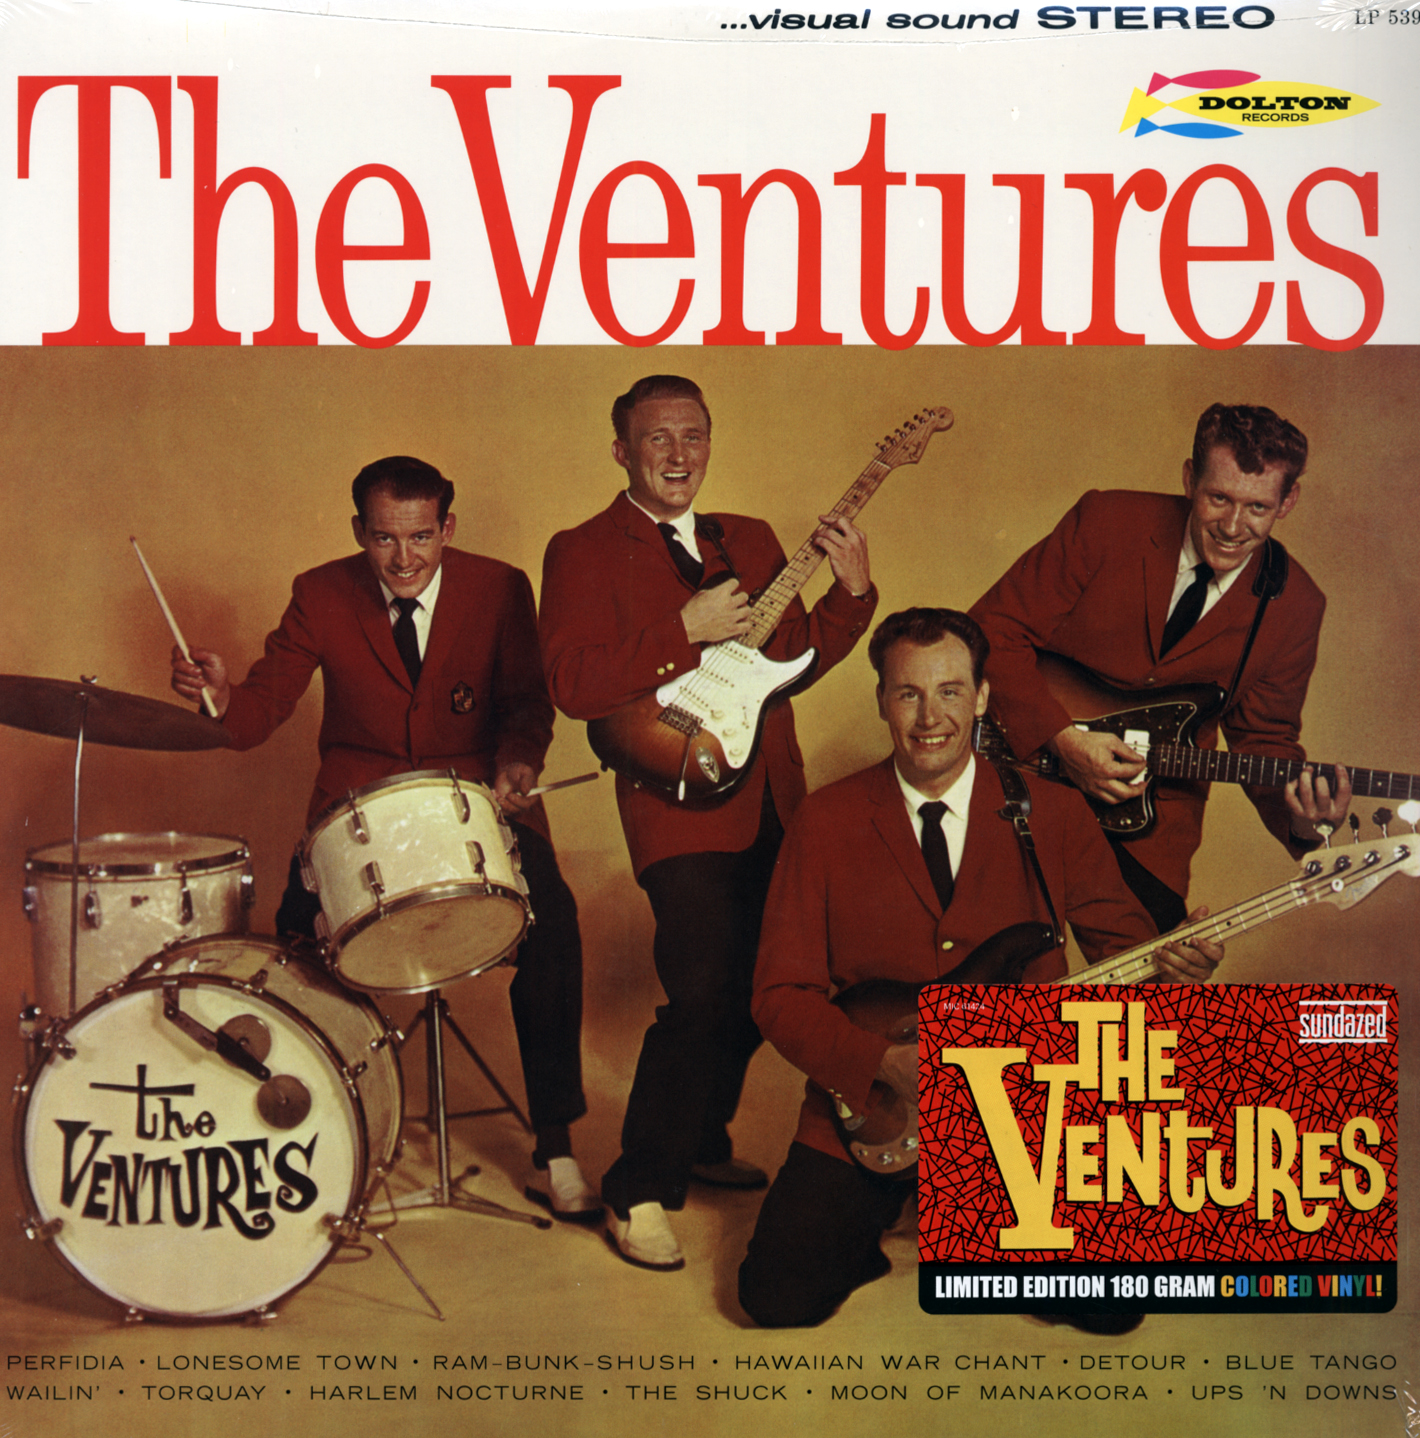 The Ventures Lp The Ventures 1961 180g Limited Edition